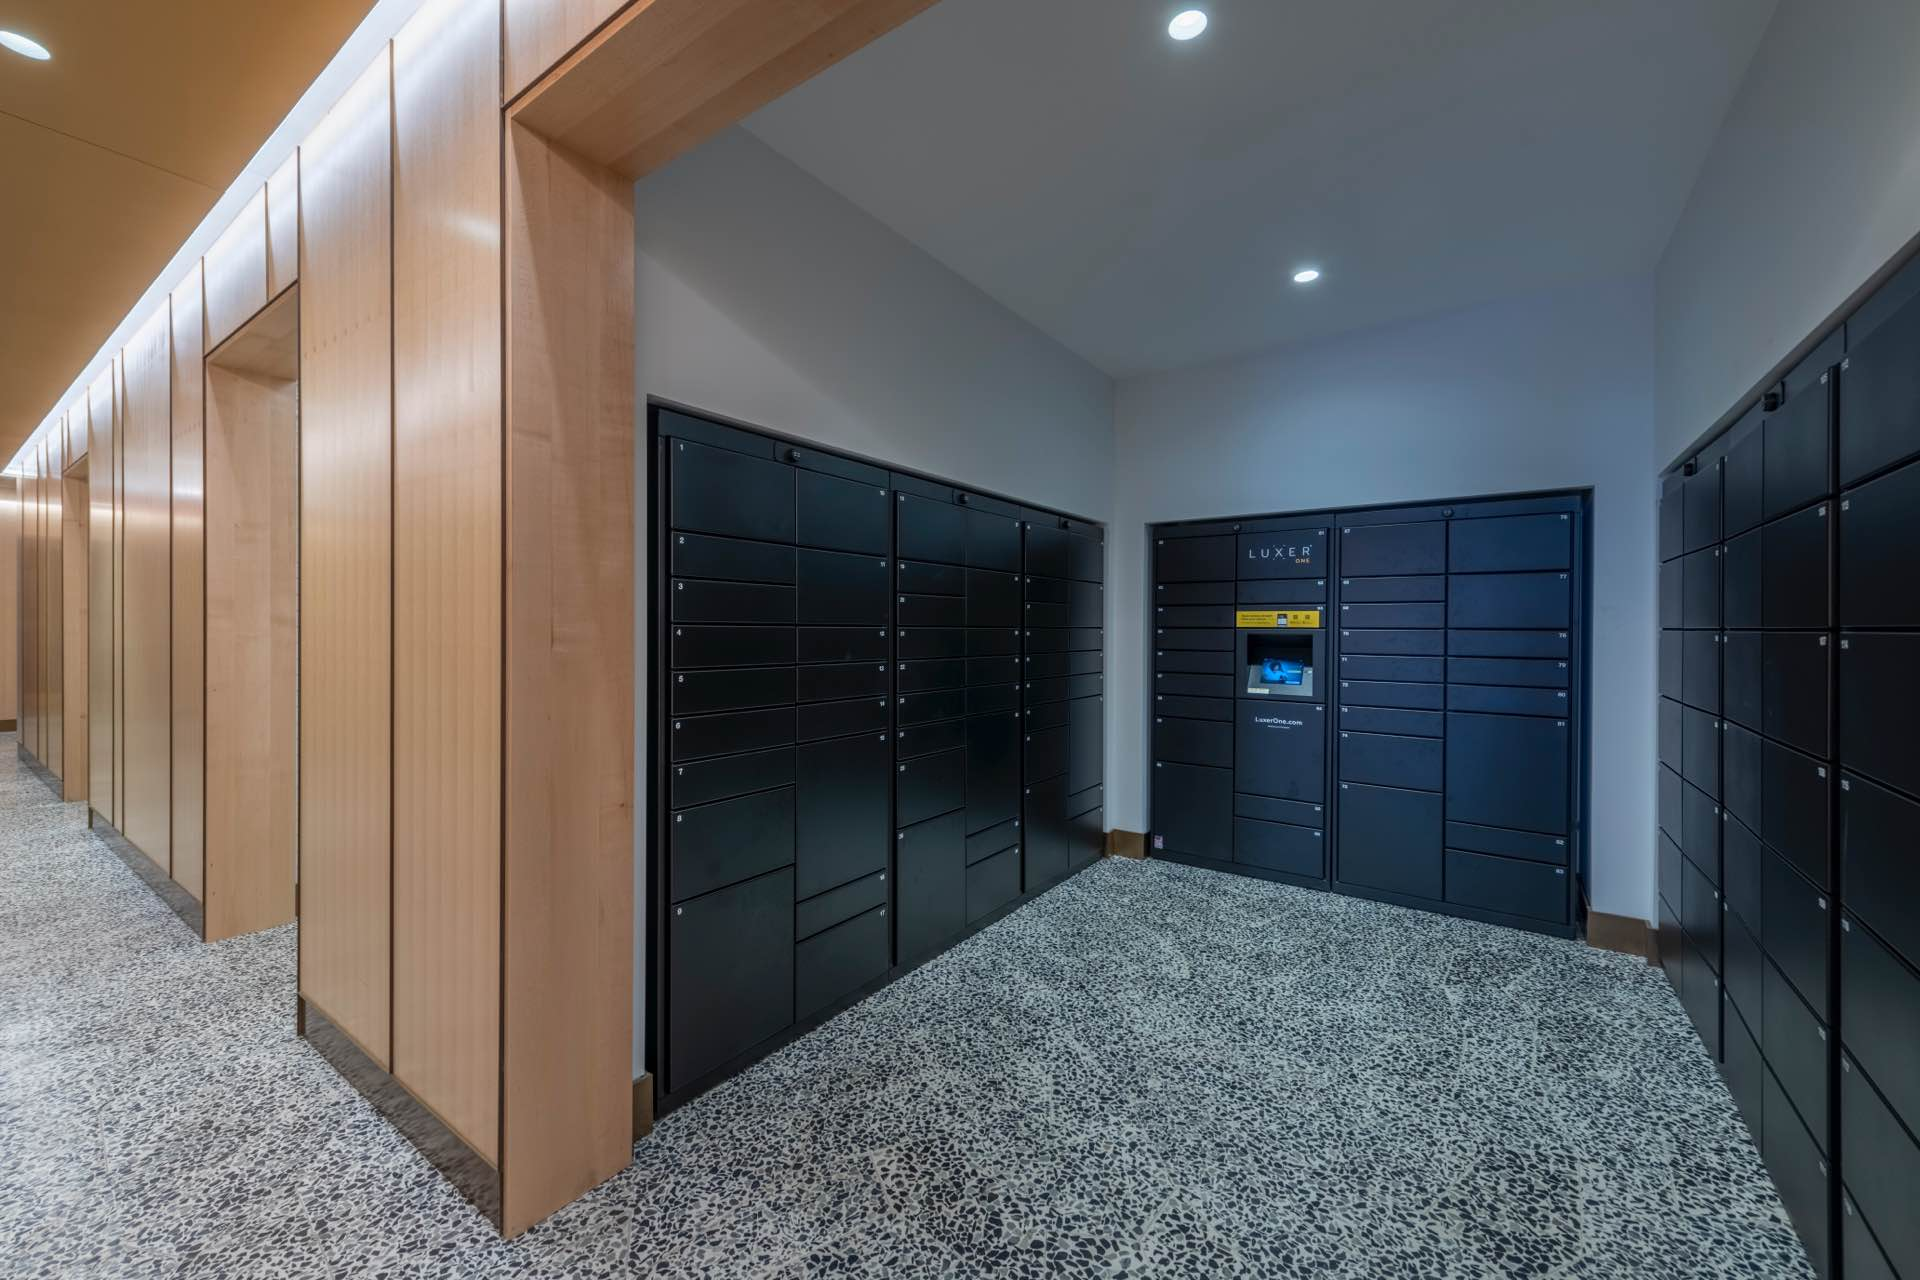 Package acceptance services with oversized packages and cold food storage available.